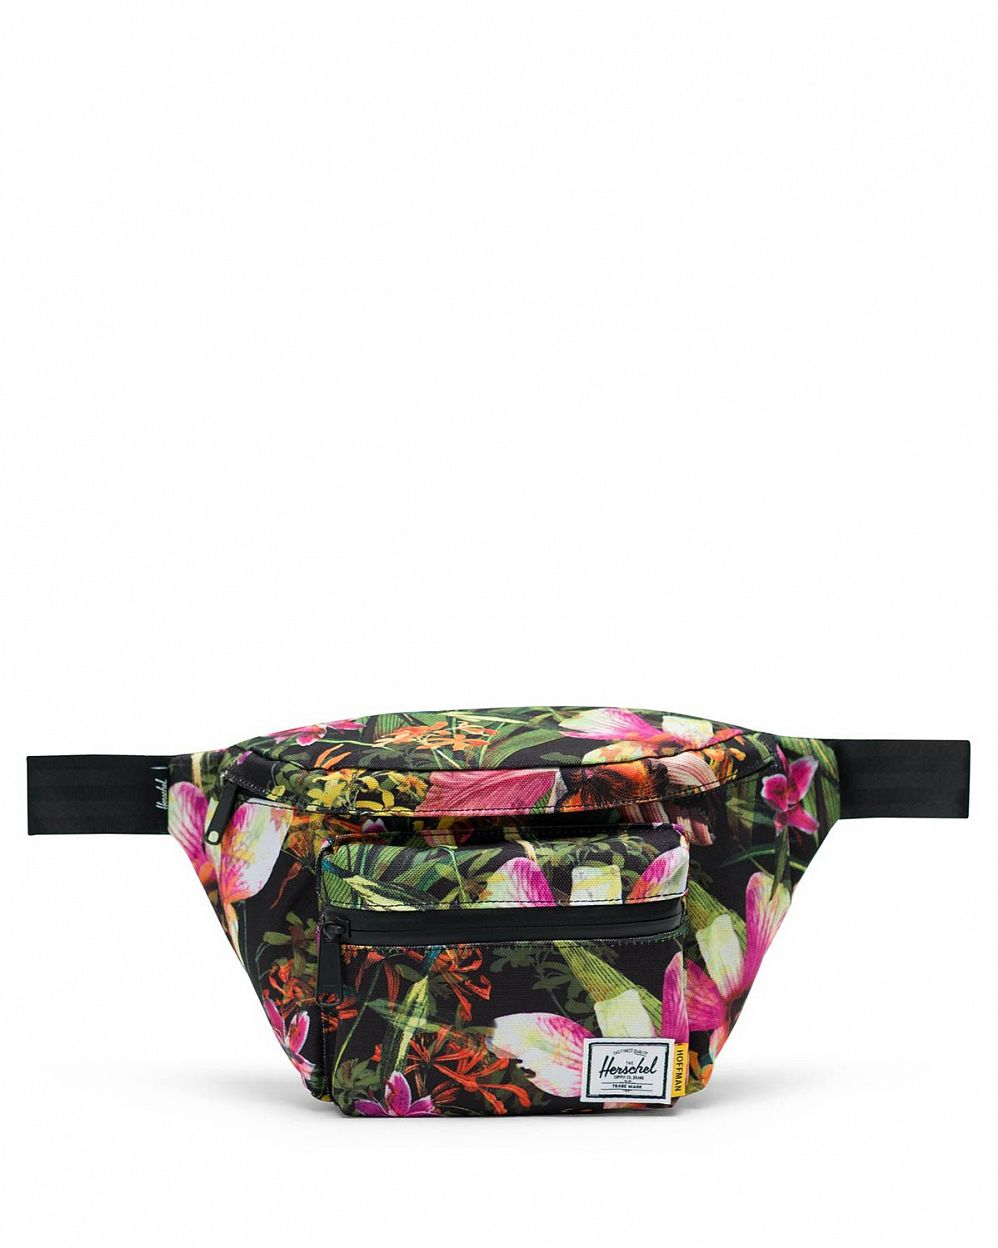 Сумка поясная Herschel Seventeen Jungle Hoffman отзывы